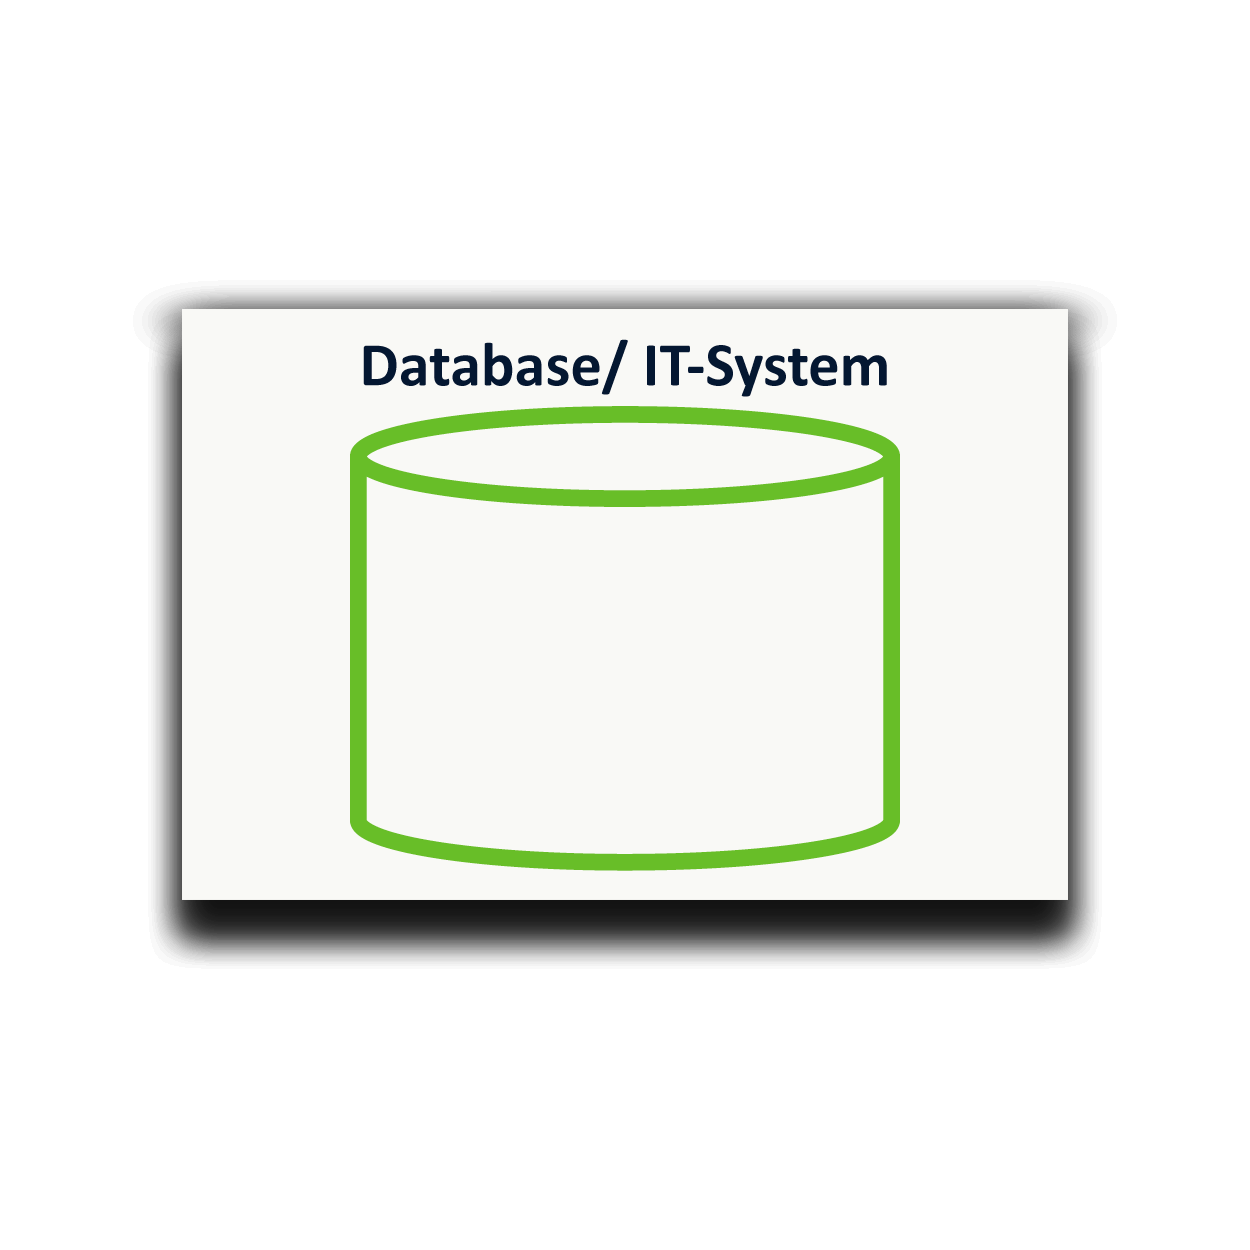 Icon Database/ IT-System e as sticky notes for process analysis